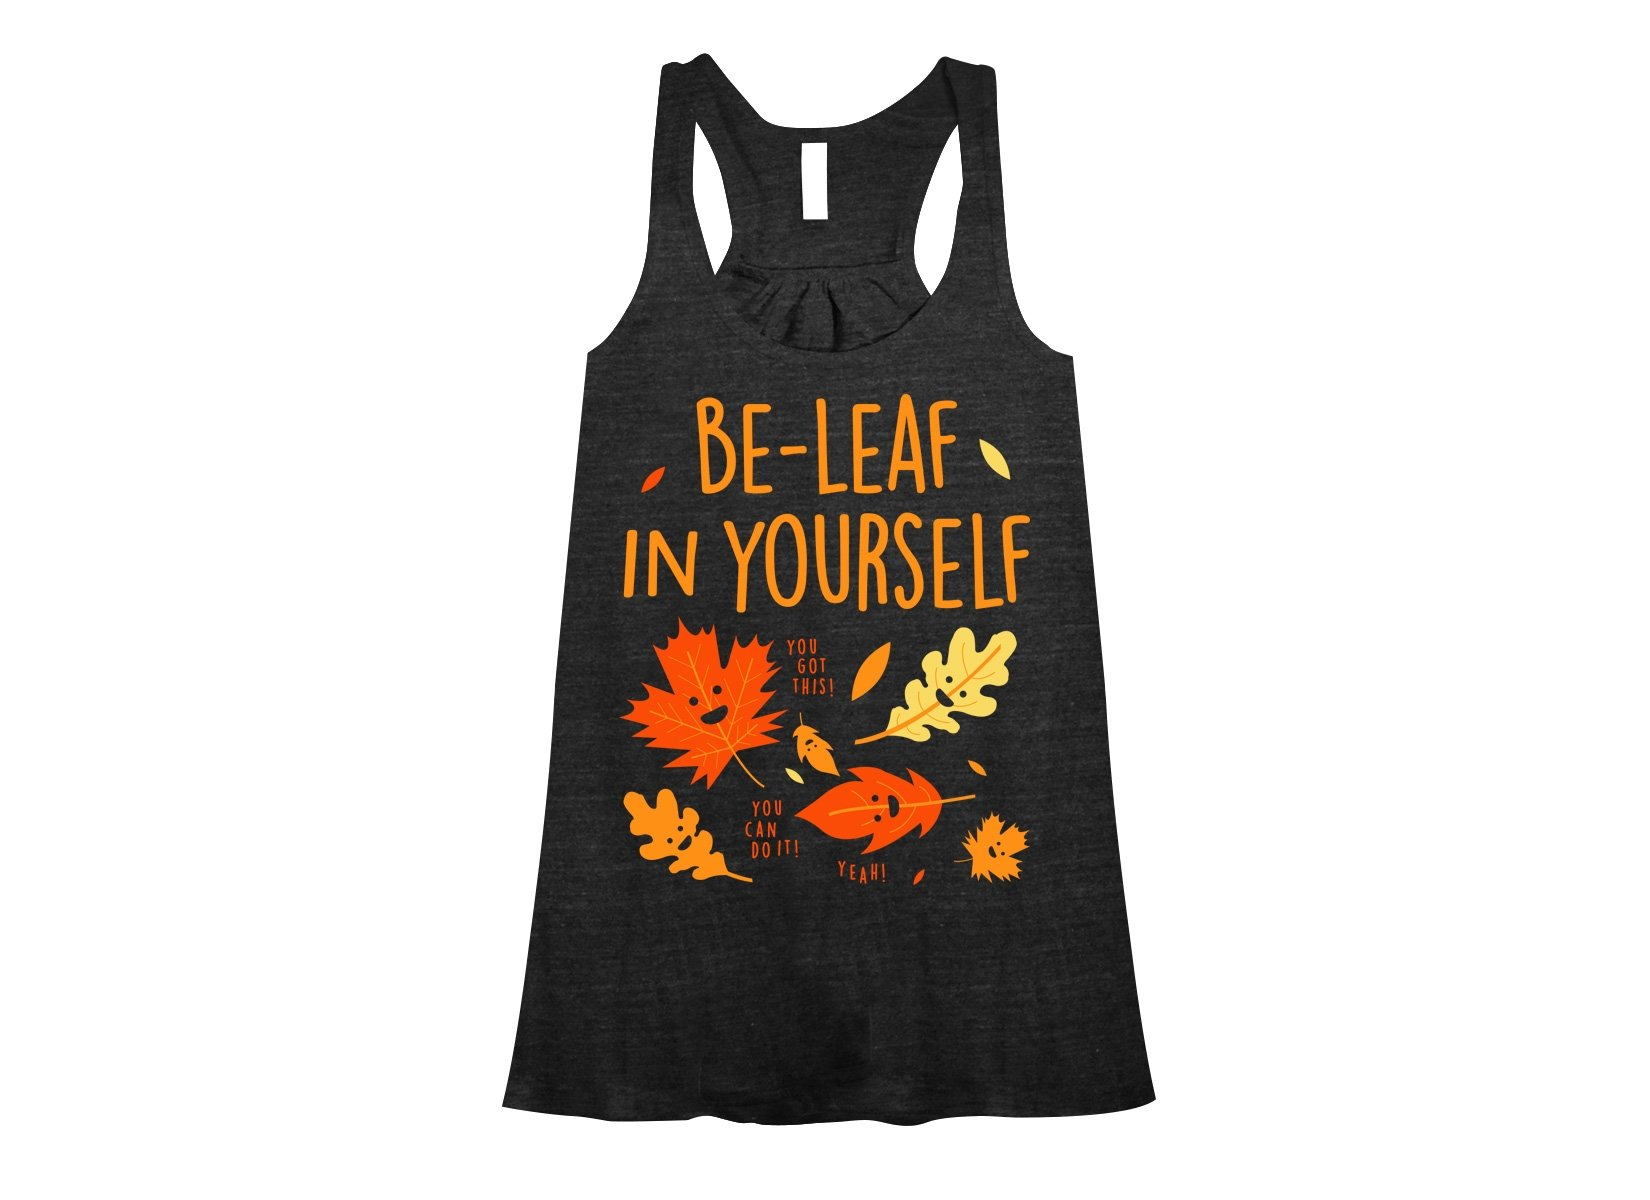 Be-Leaf In Yourself on Womens Tanks T-Shirt